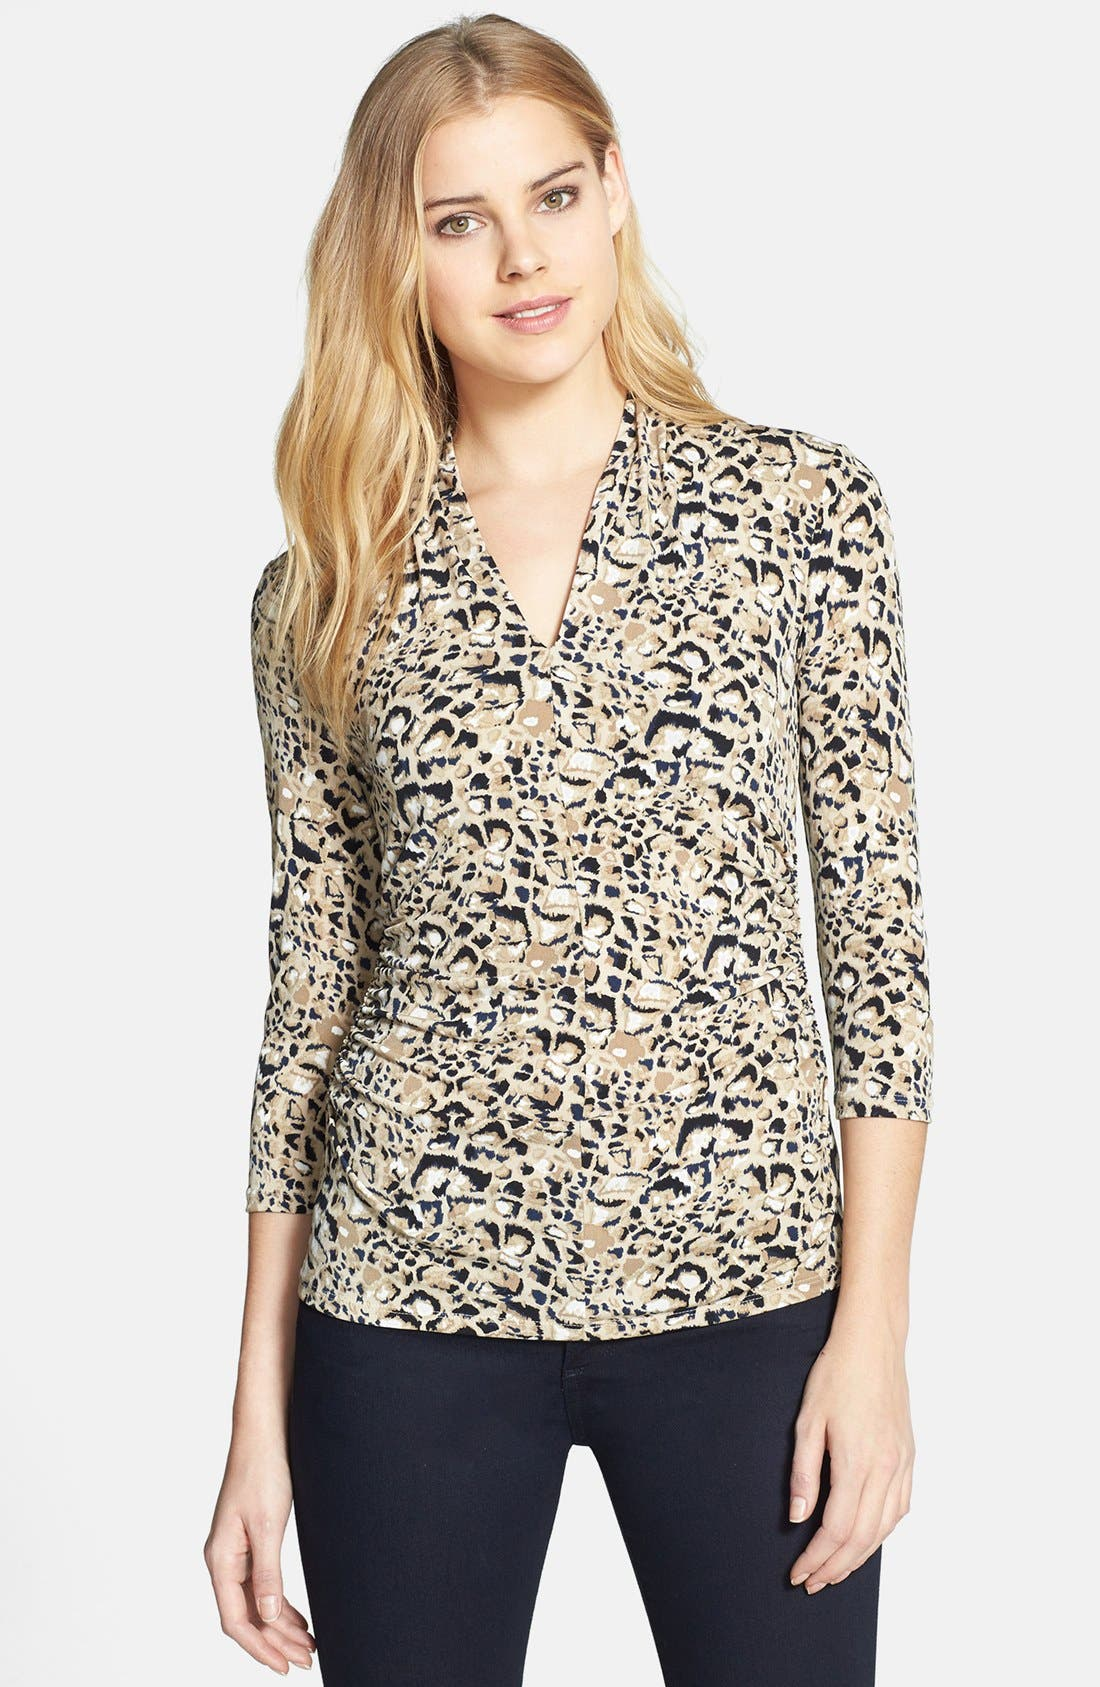 Alternate Image 1 Selected - Vince Camuto 'Animal Rocks' V-Neck Top